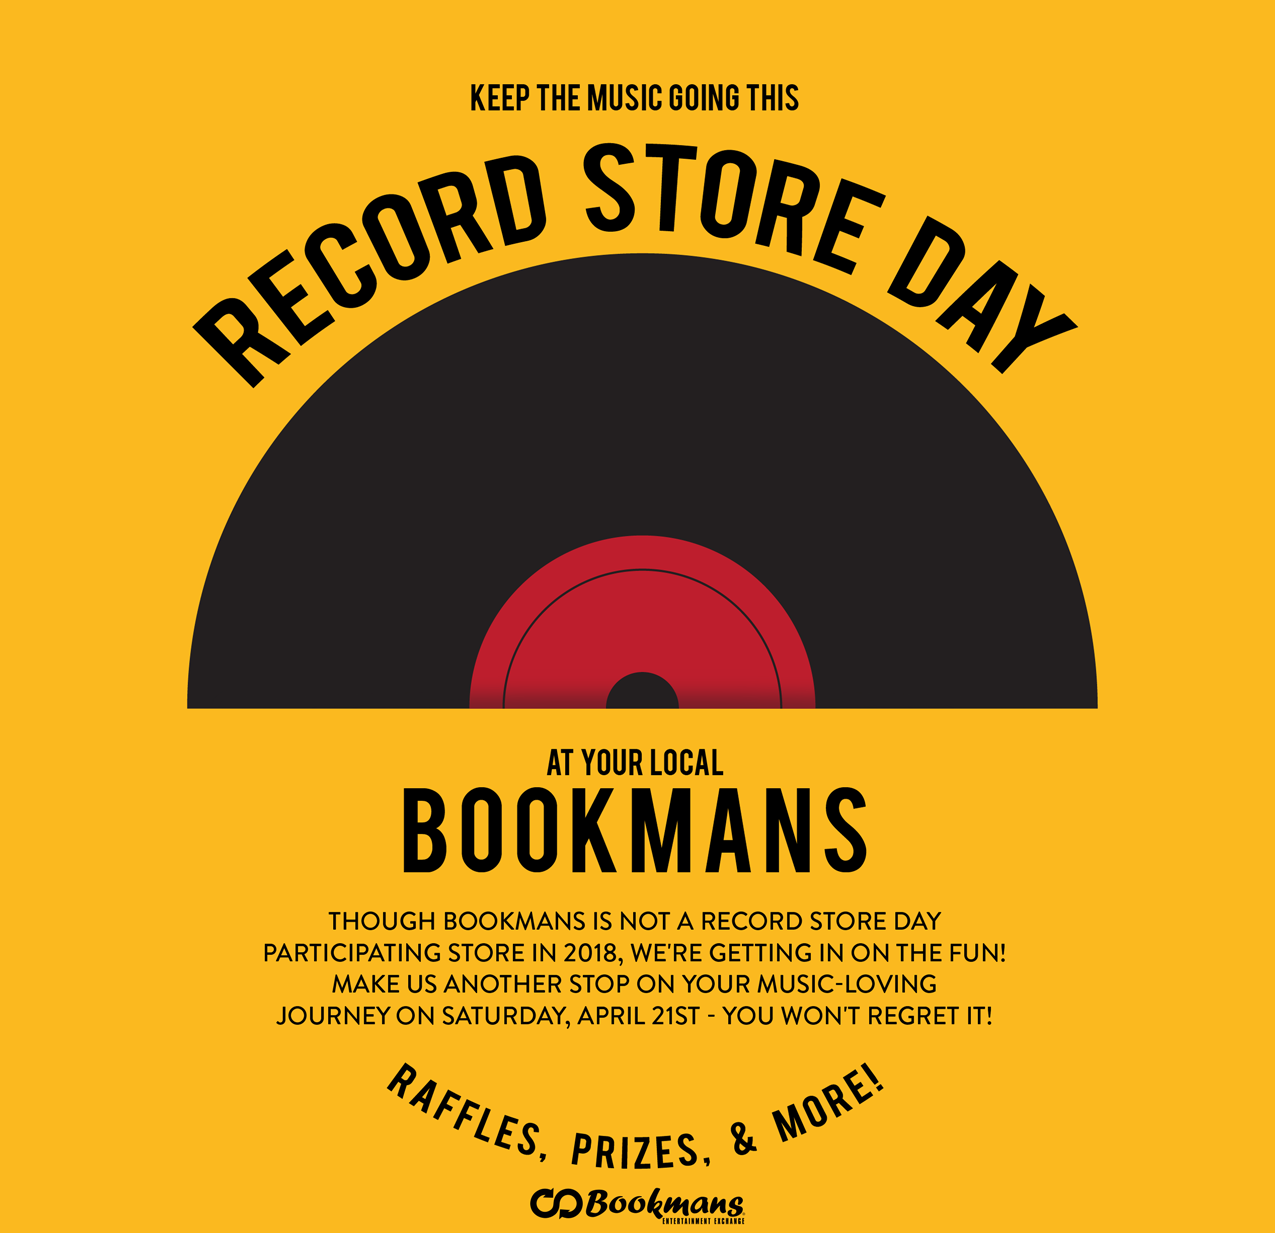 Bookmans Record Store Day sale and event flyer